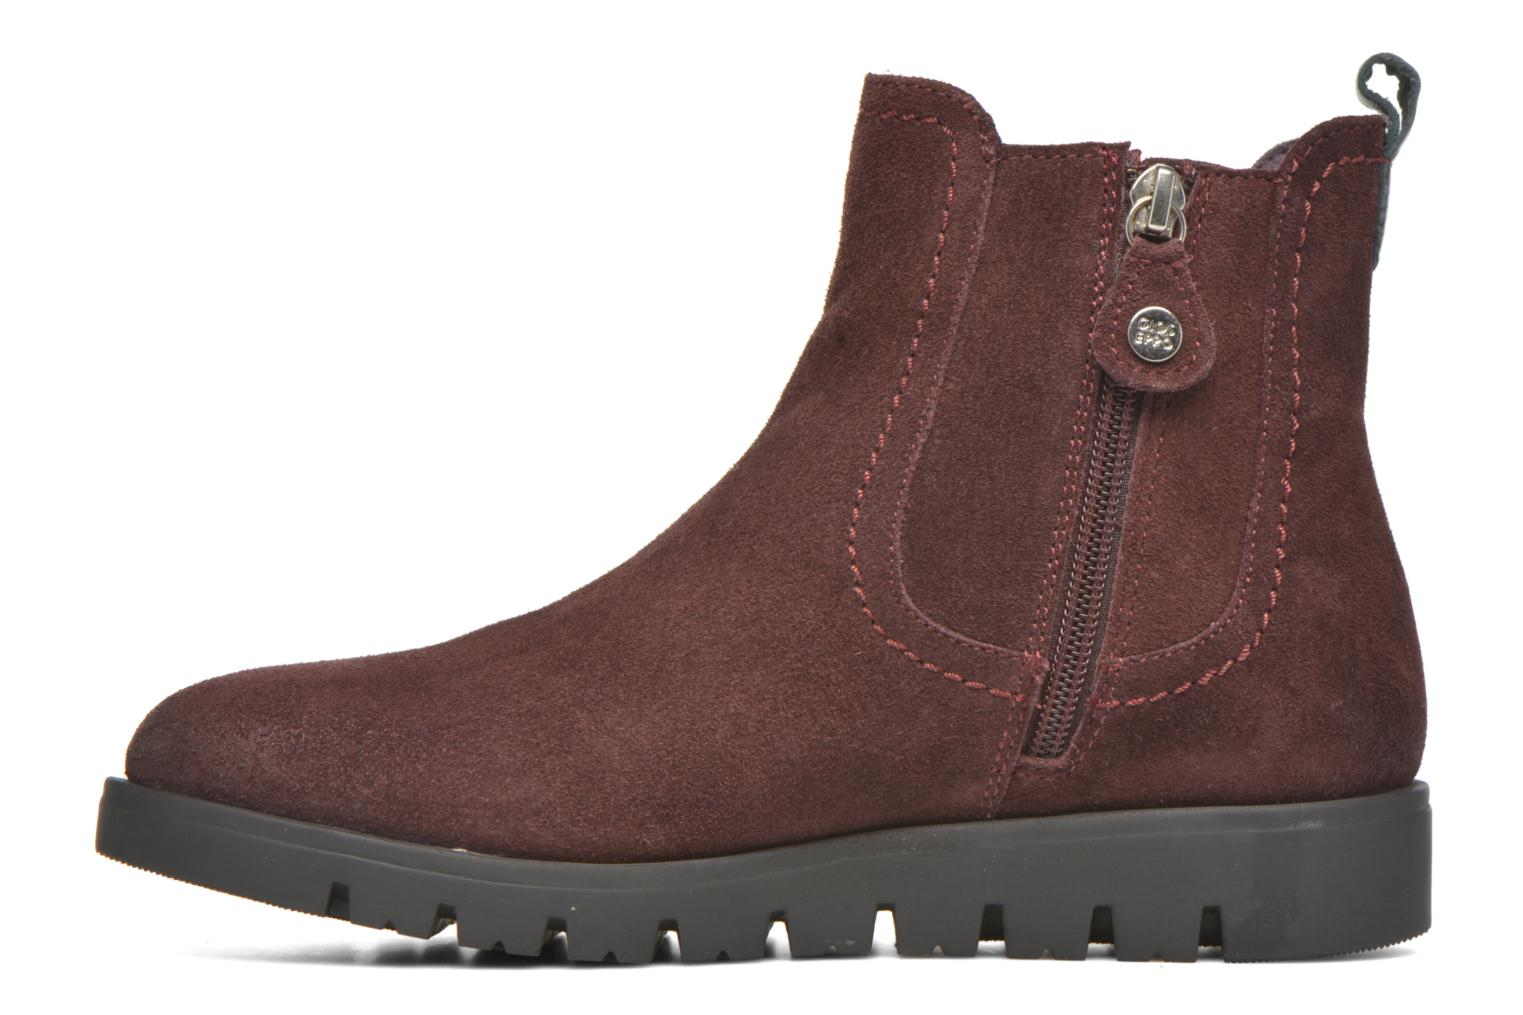 Bottines et boots Gioseppo Muros Bordeaux vue face